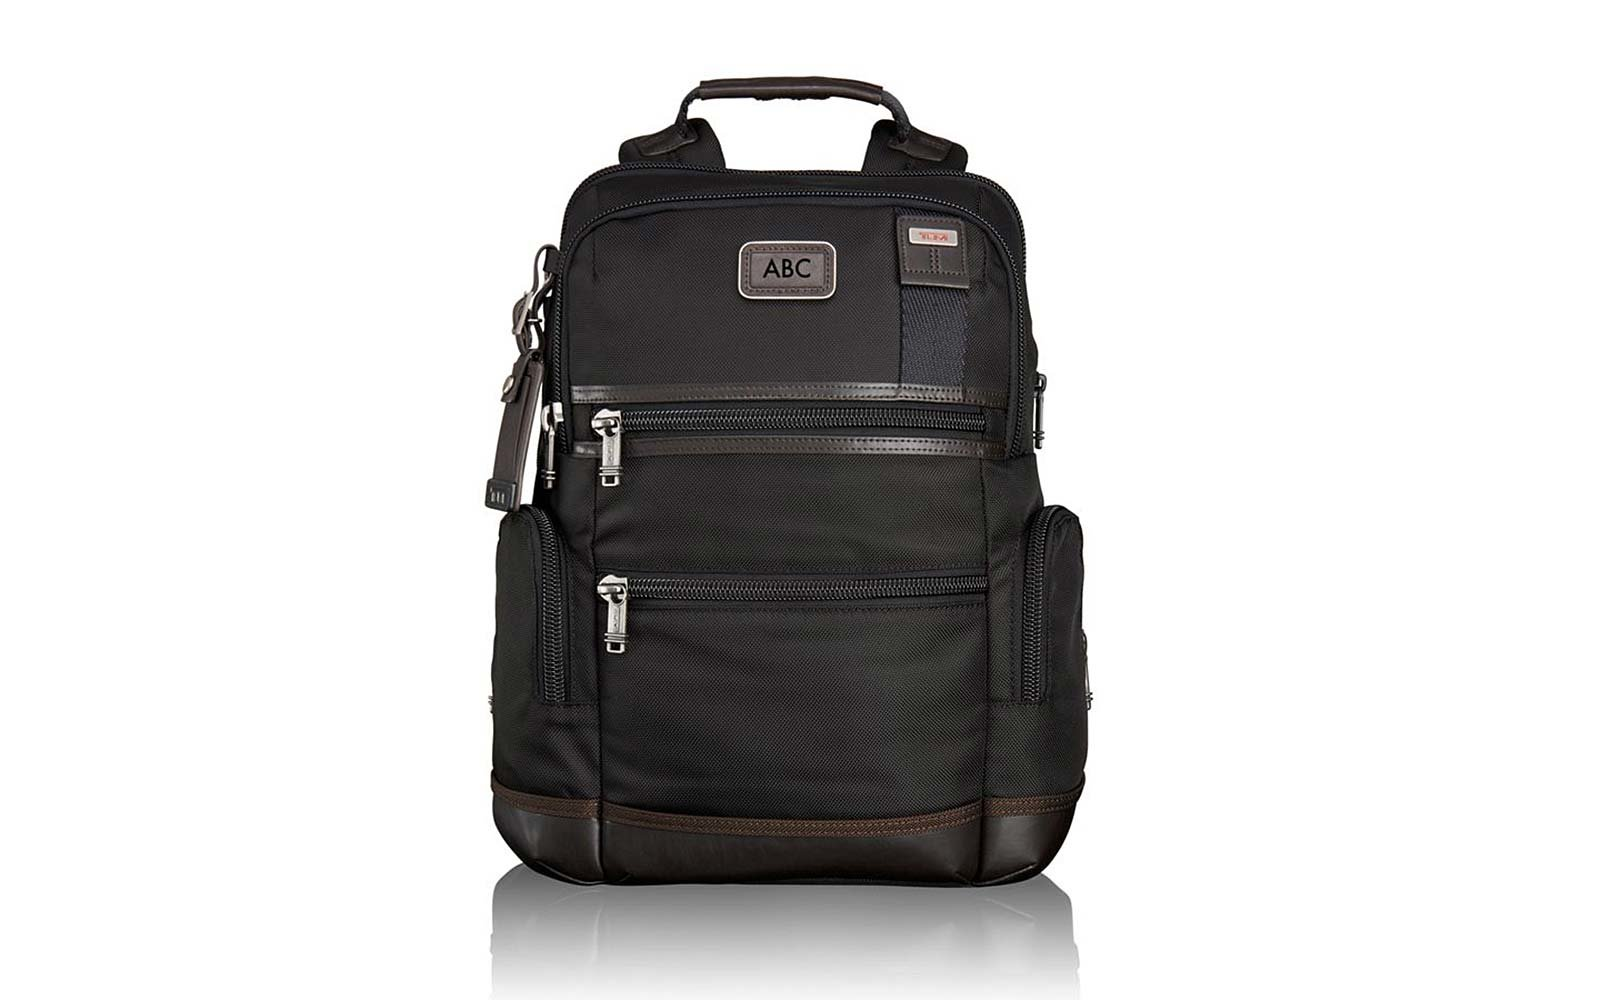 Travel Packing Essentials Tumi bag luggage